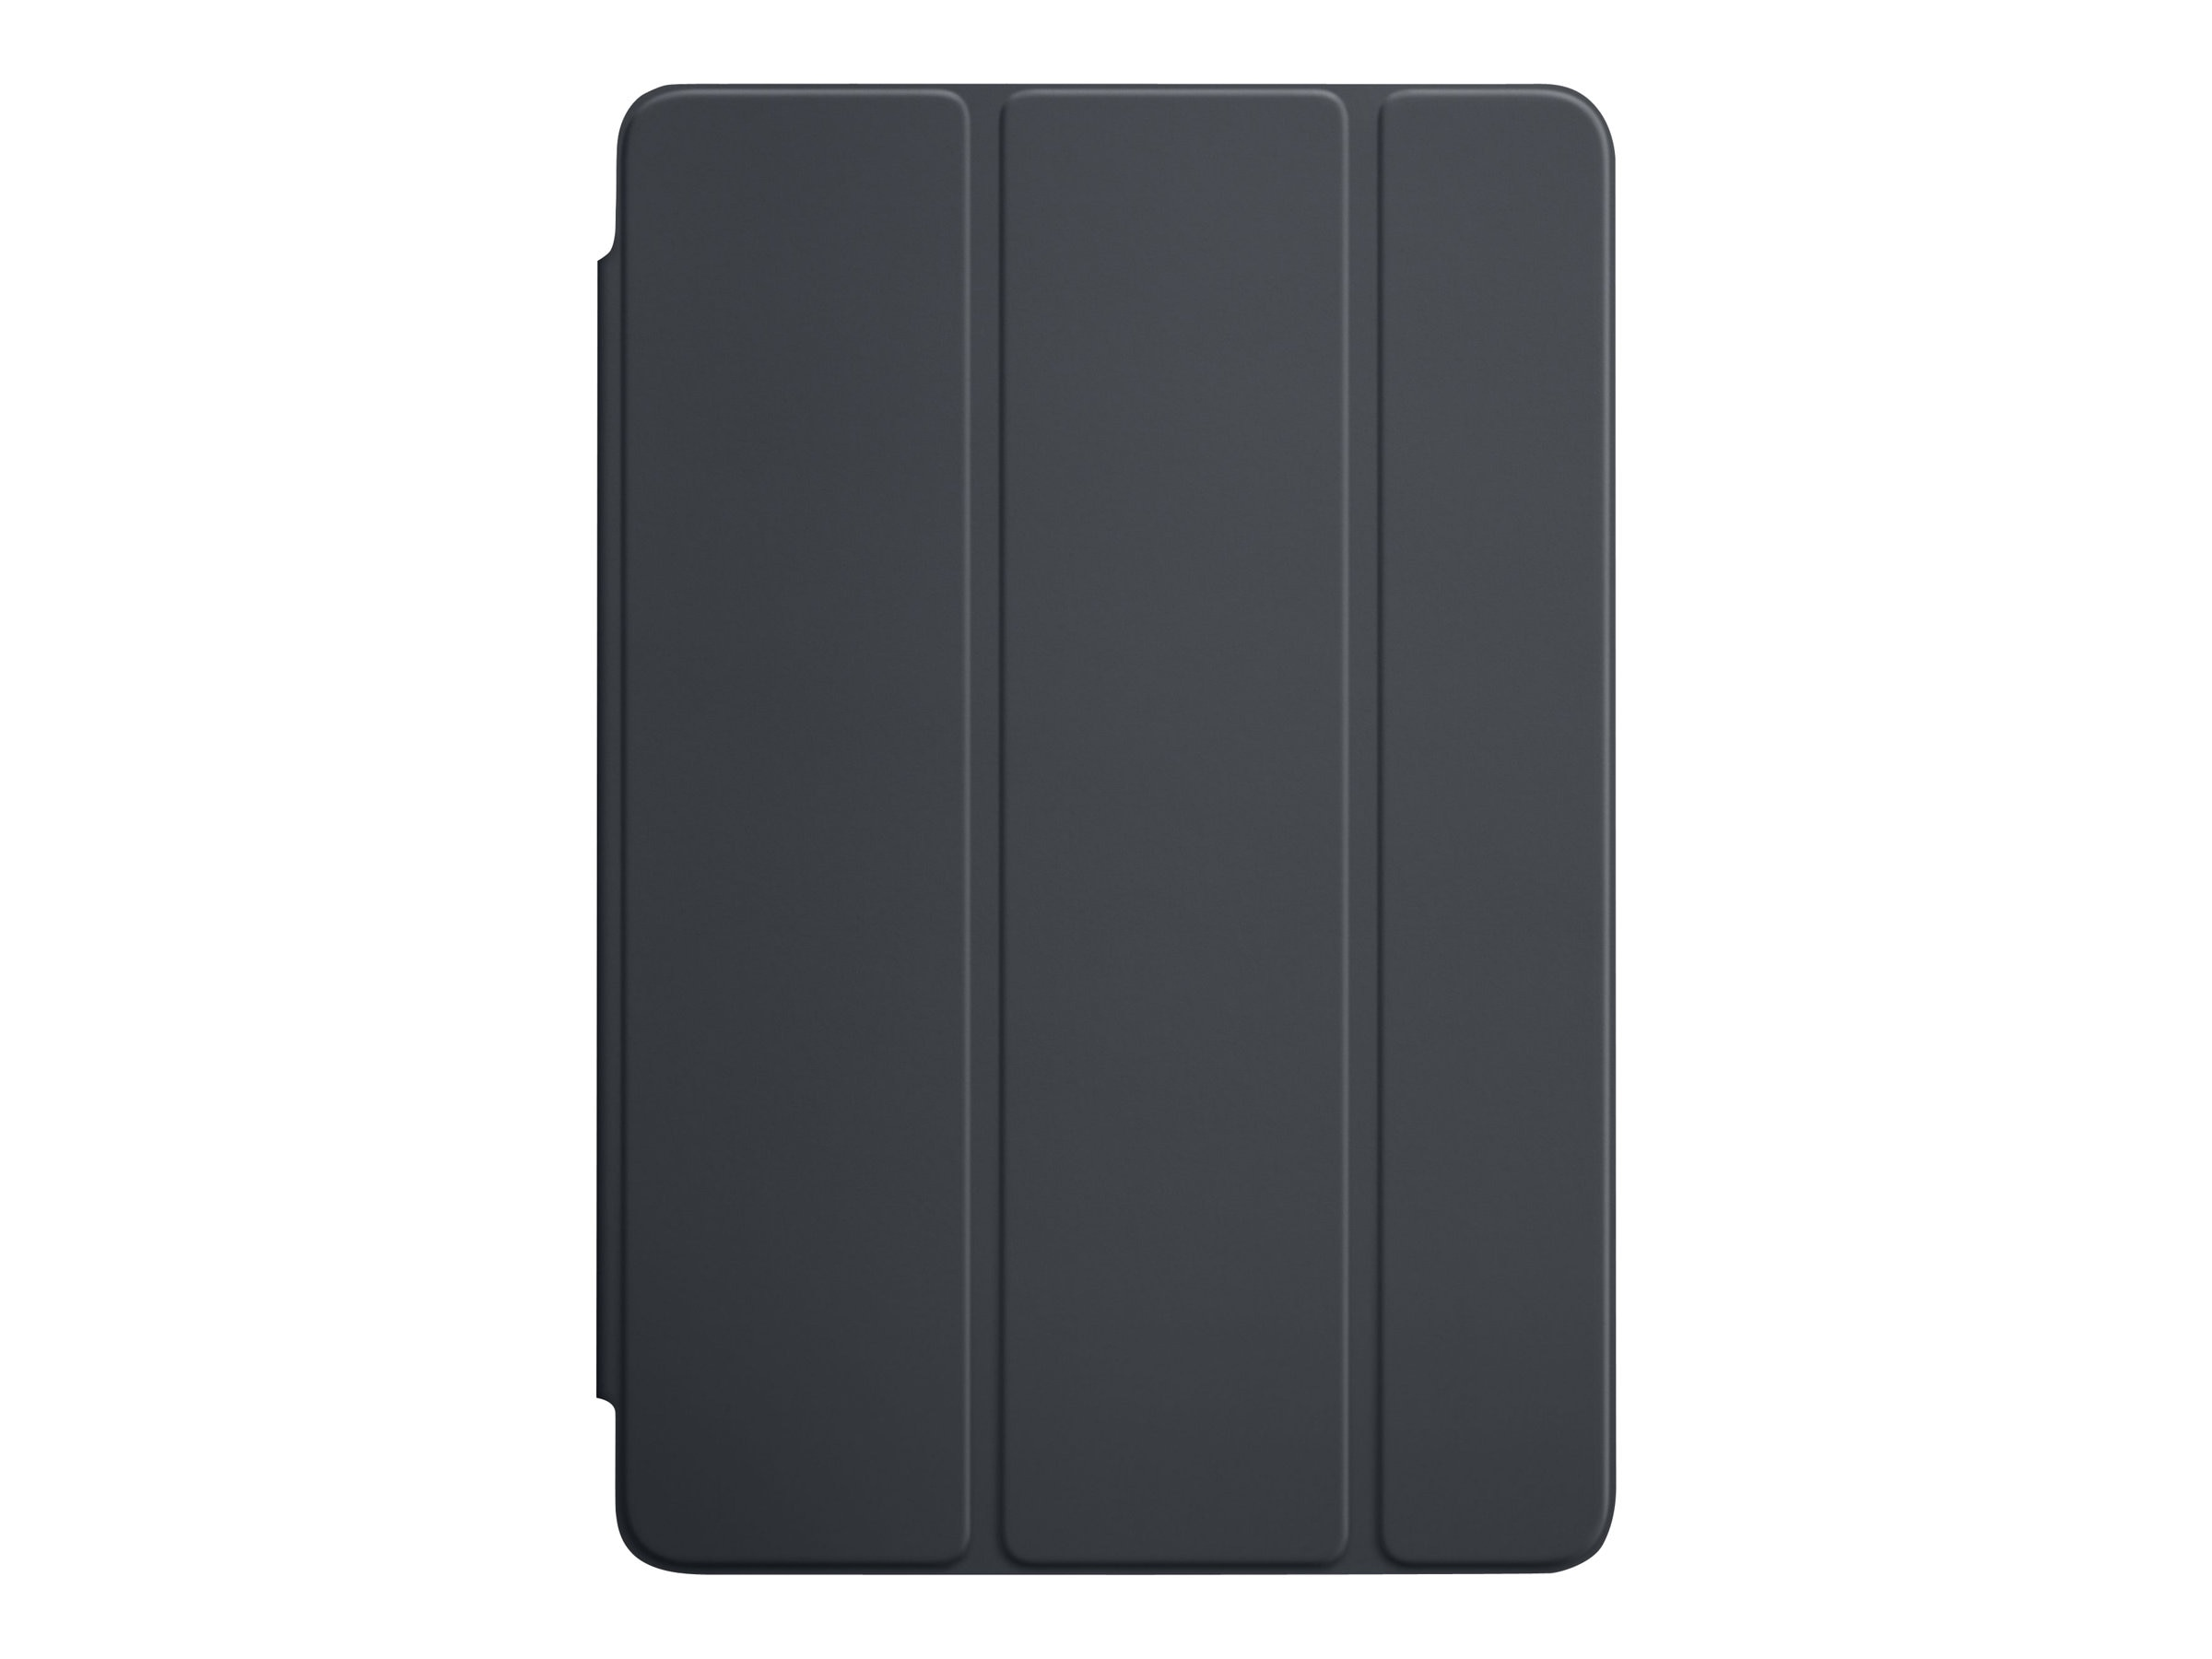 Apple iPad mini 4 Smart Cover, Charcoal Gray, MKLV2ZM/A